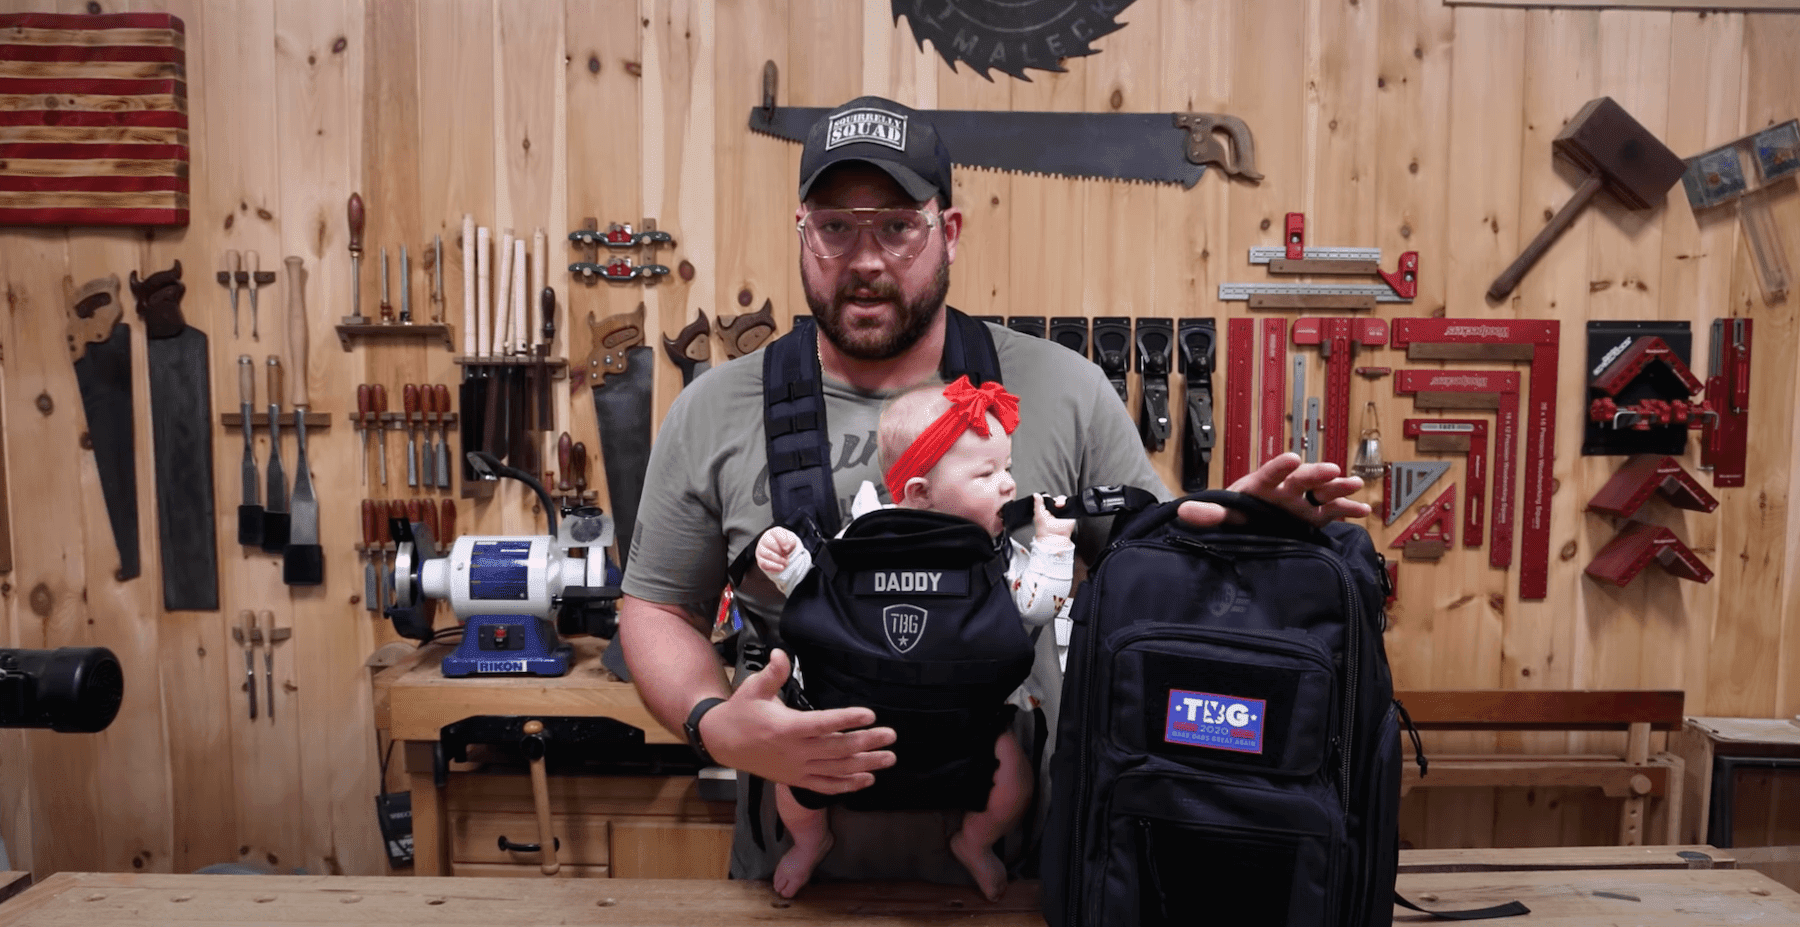 John Malecki and his daughter using Tactical Baby Gear